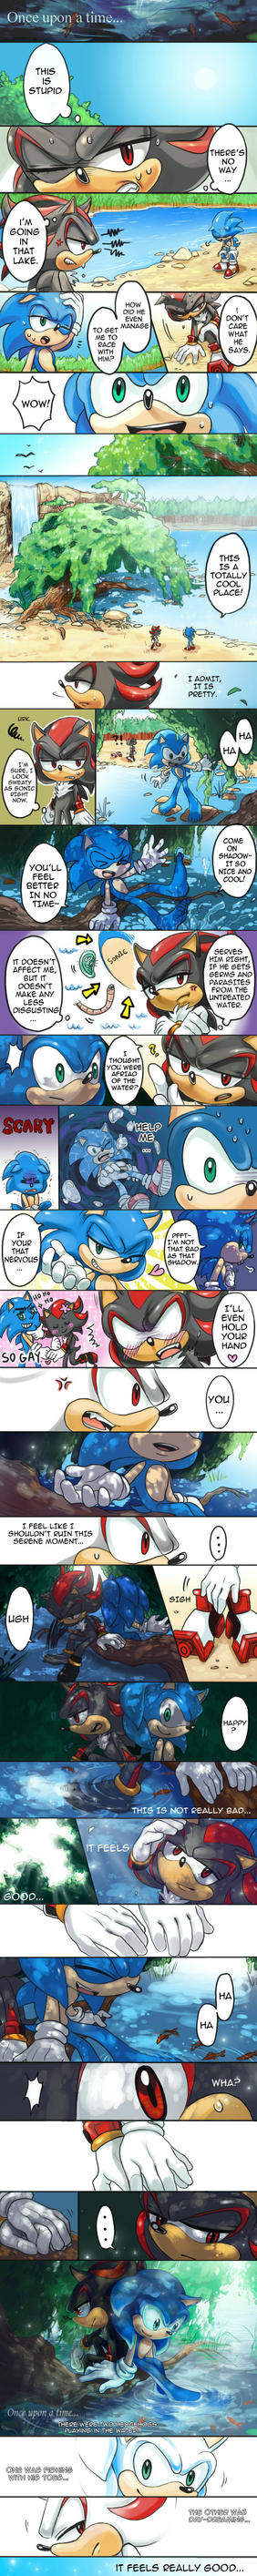 SONADOW: ONCE UPON A TIME ShORT COMIC by C2ndy2c1d